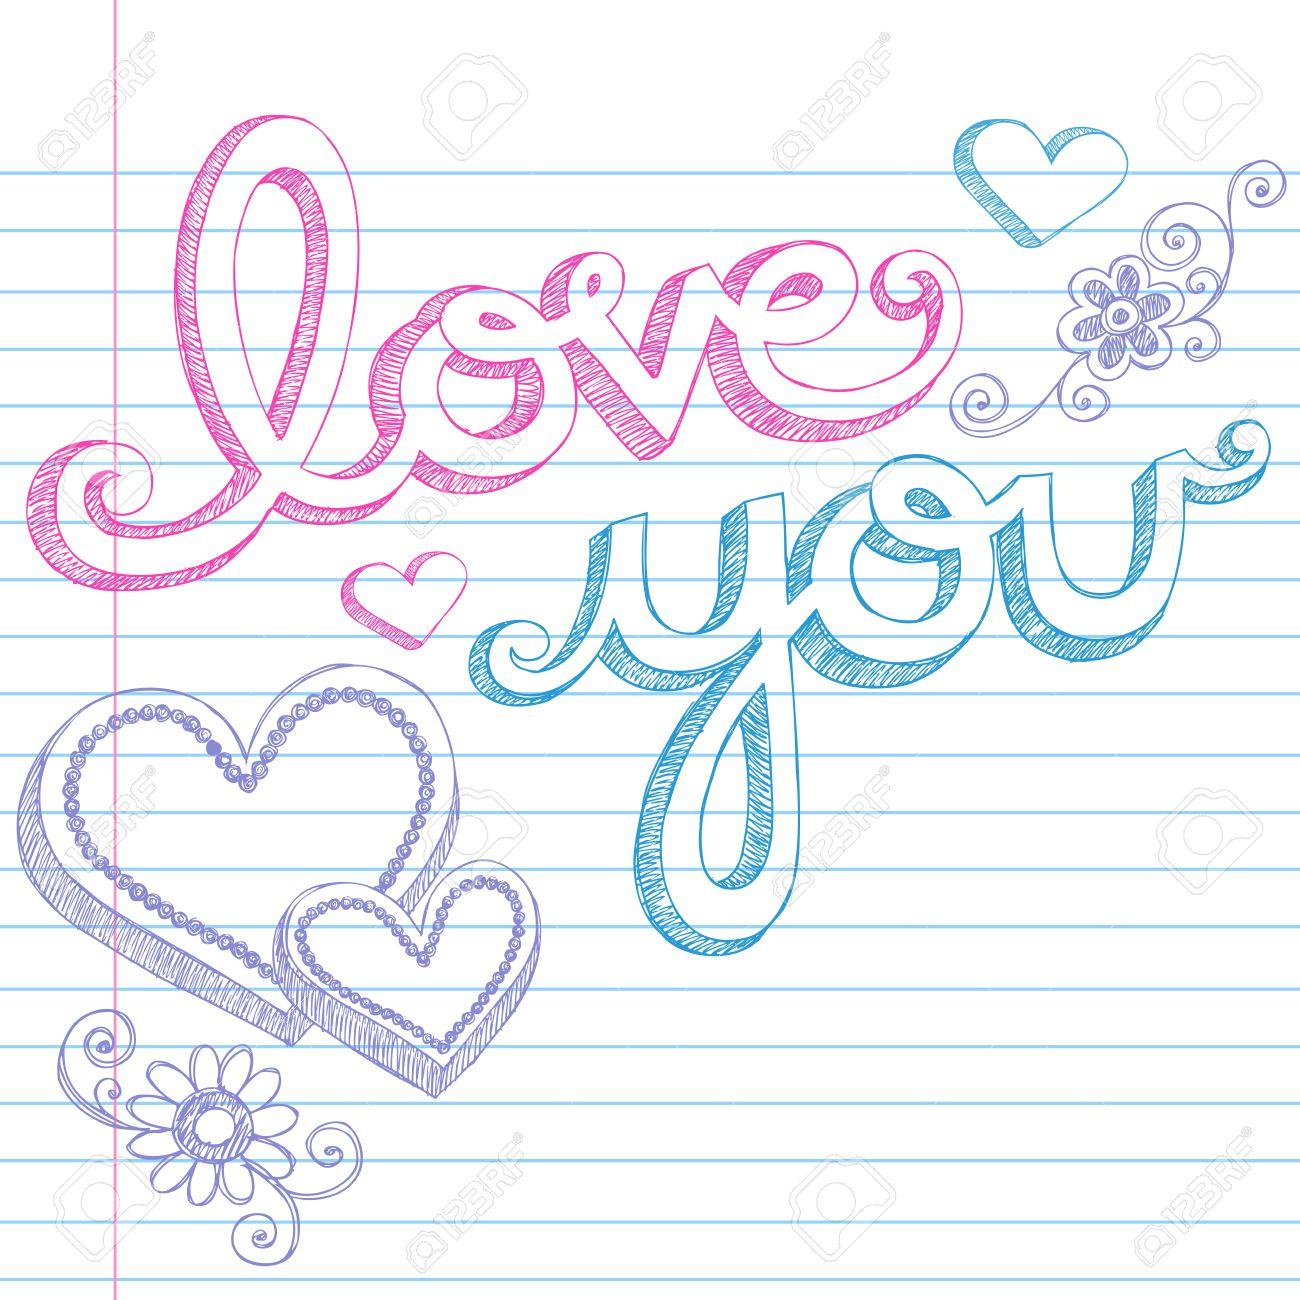 HandDrawn Valentines Day Love You Sketchy Notebook Doodles – Lined Paper with Drawing Box